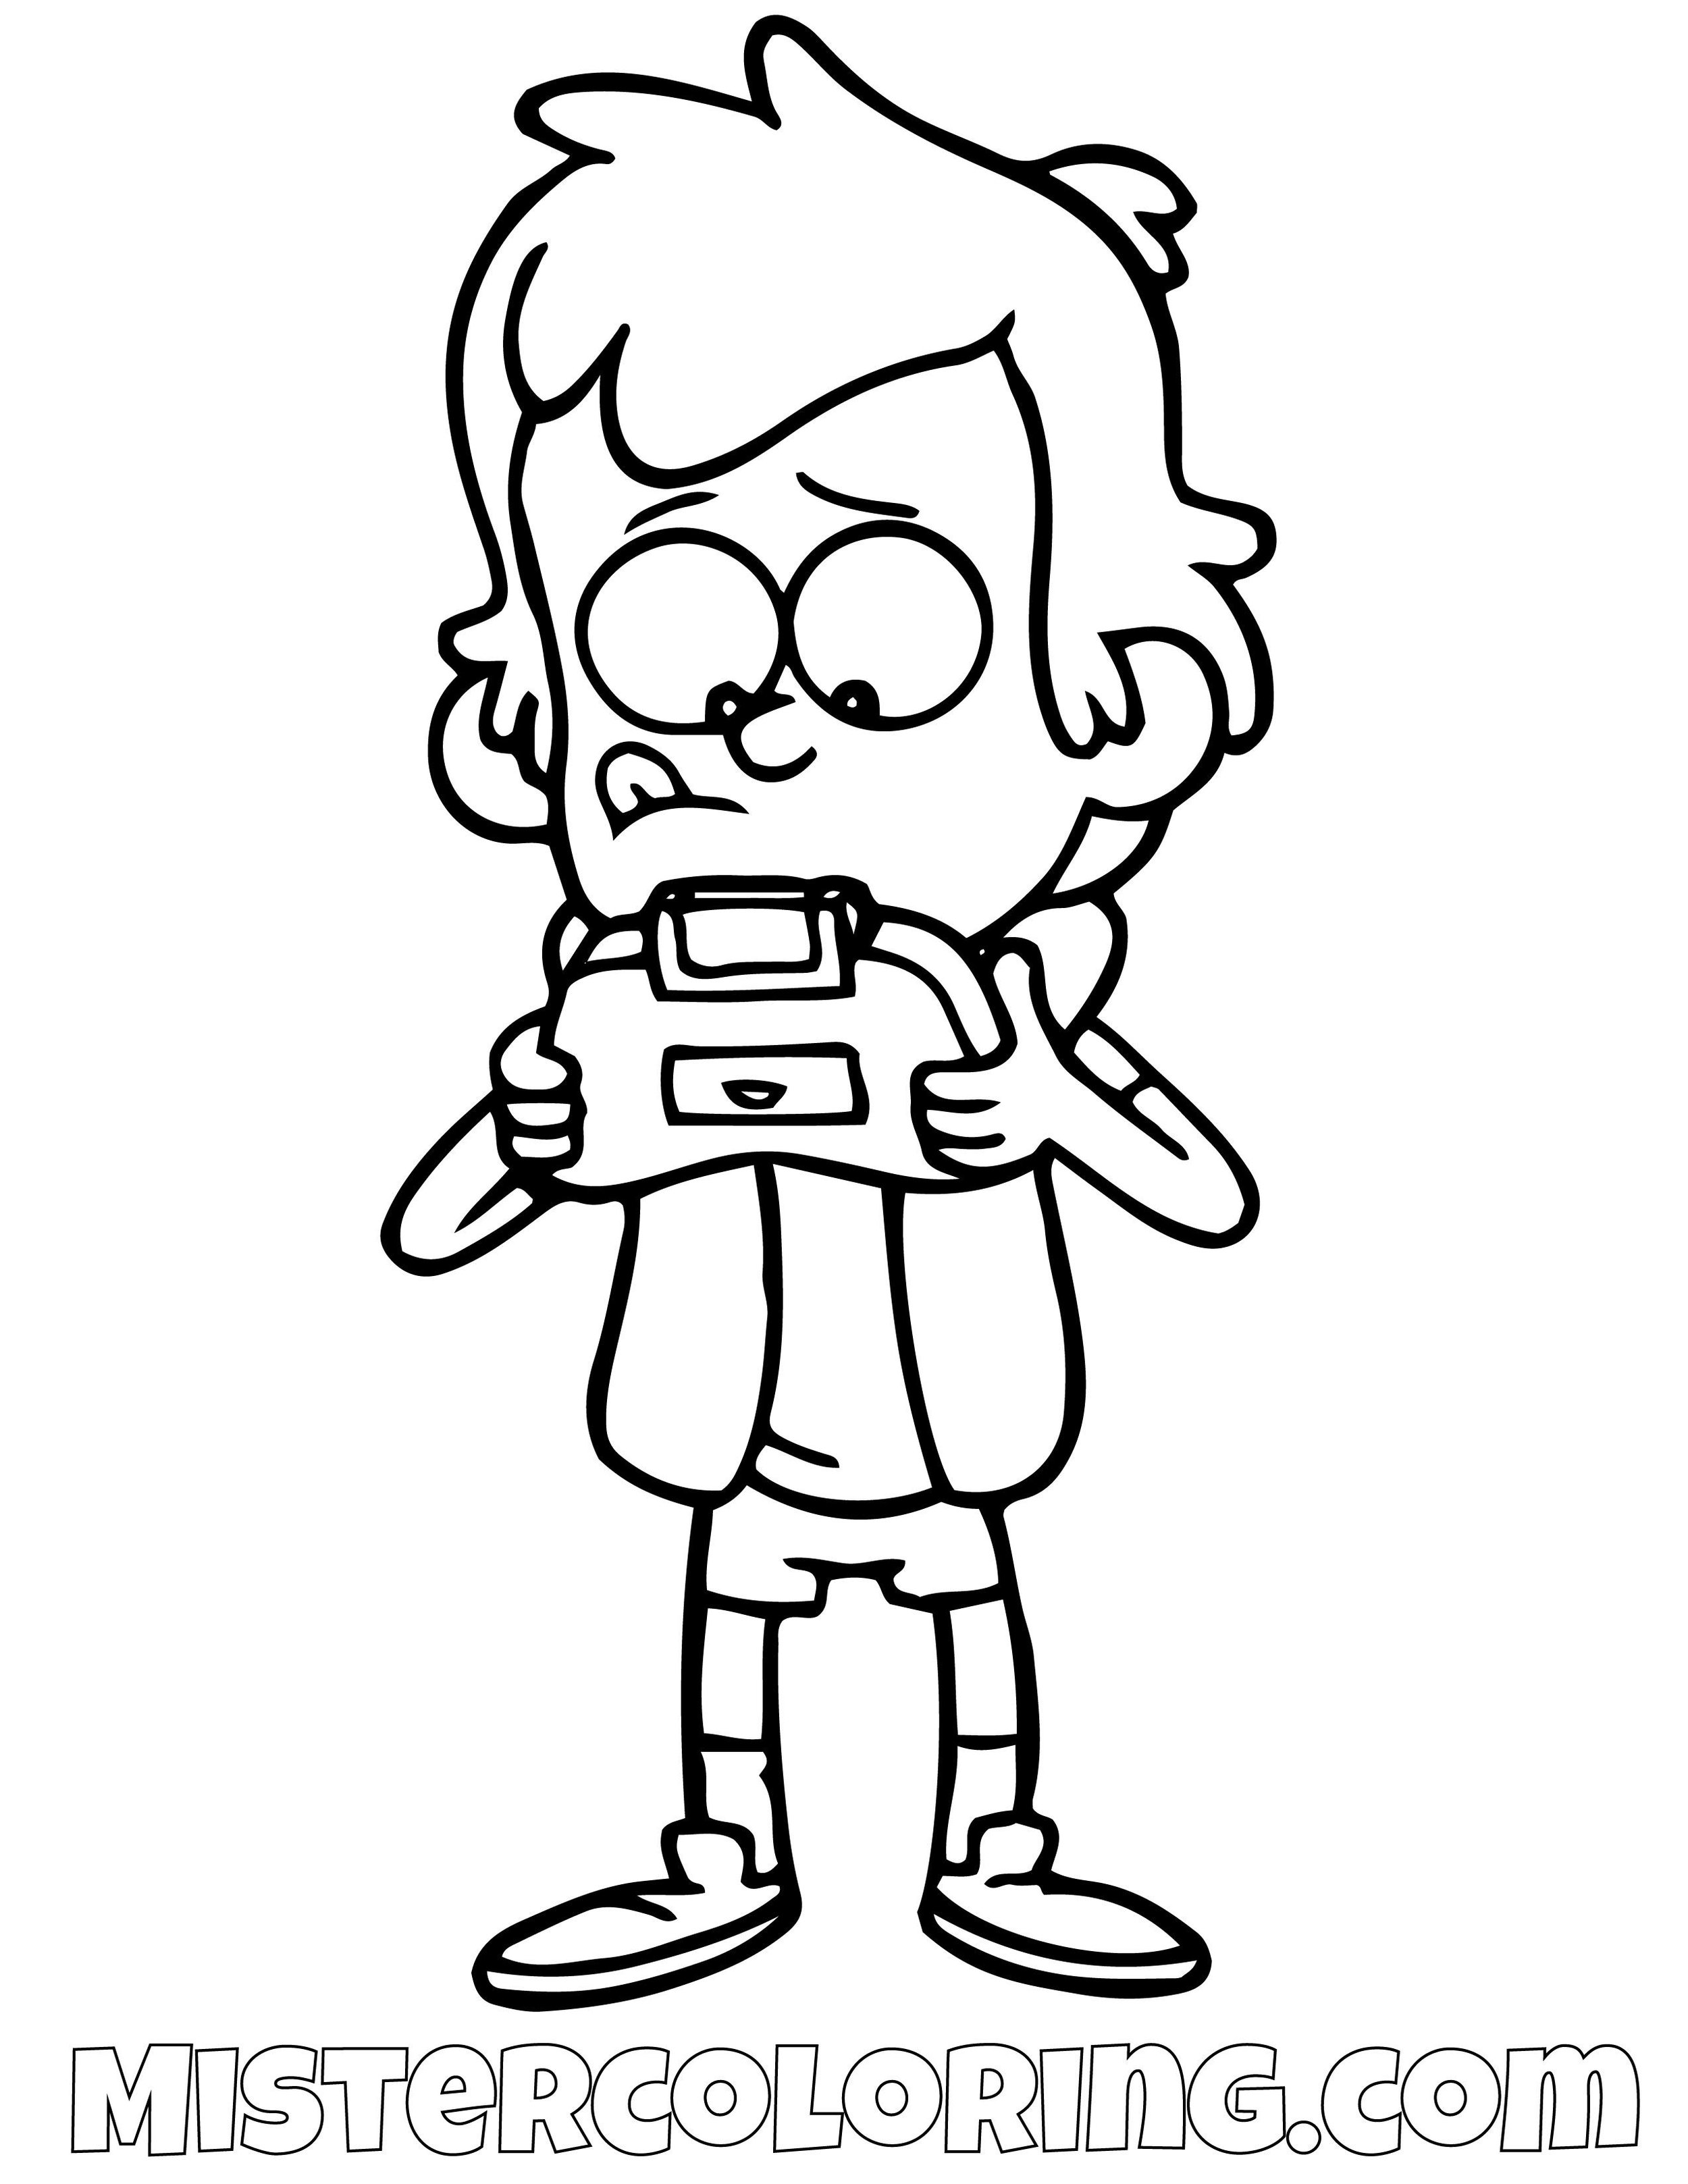 Dipper Pines Playing Video Games Gravity Falls Coloring Pages